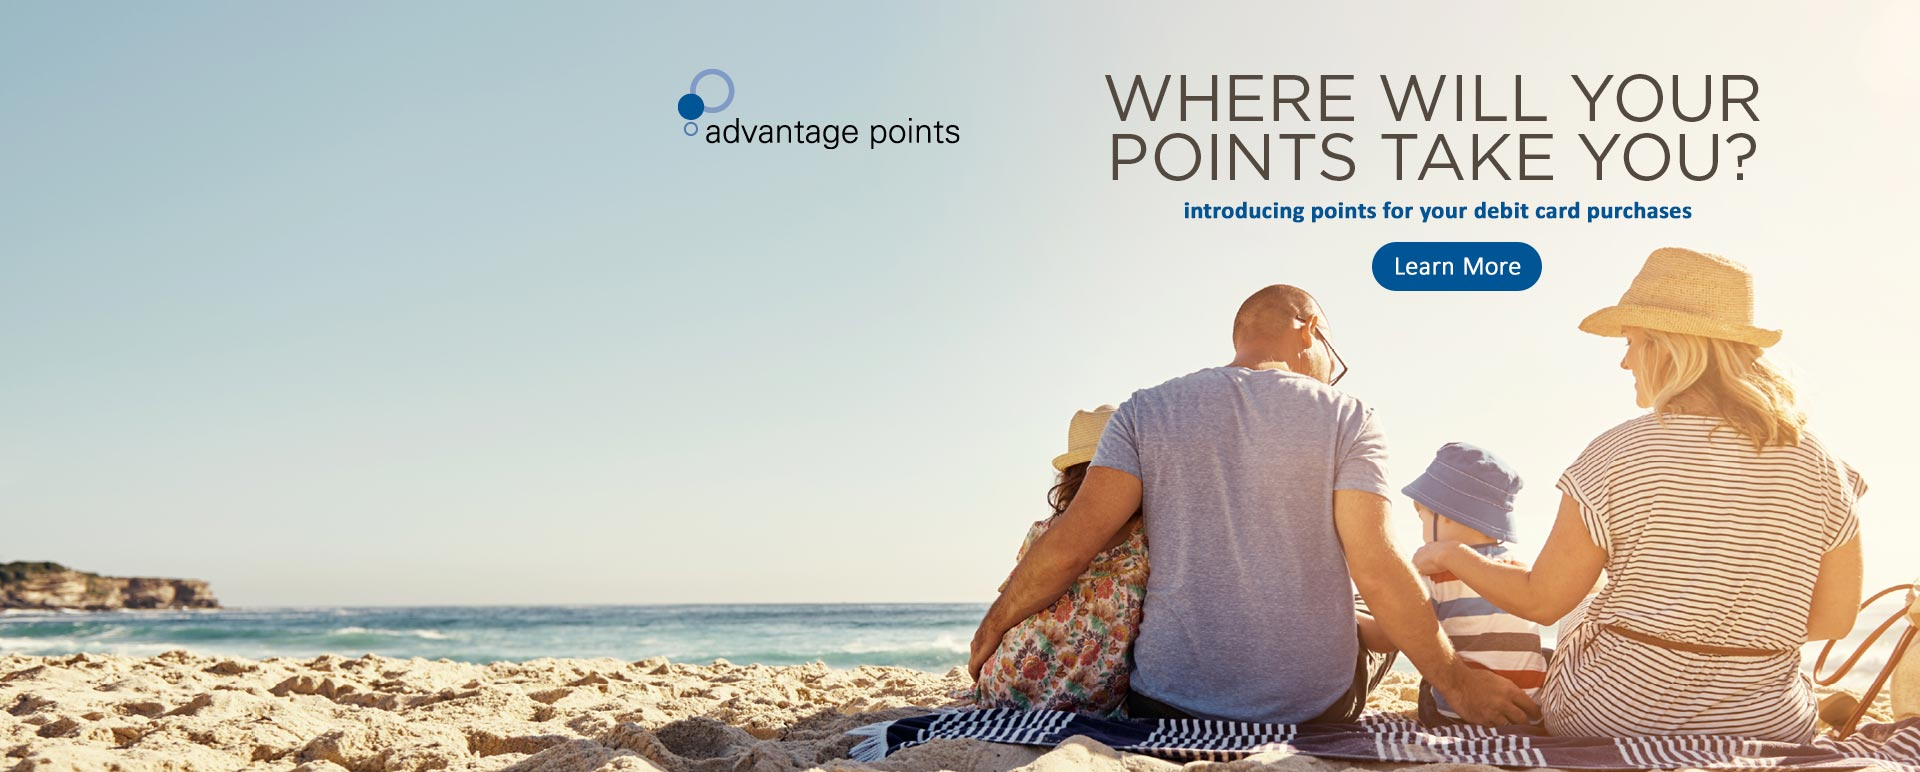 Where will your points take you? Introducing points for your debit card purchases. Learn More.